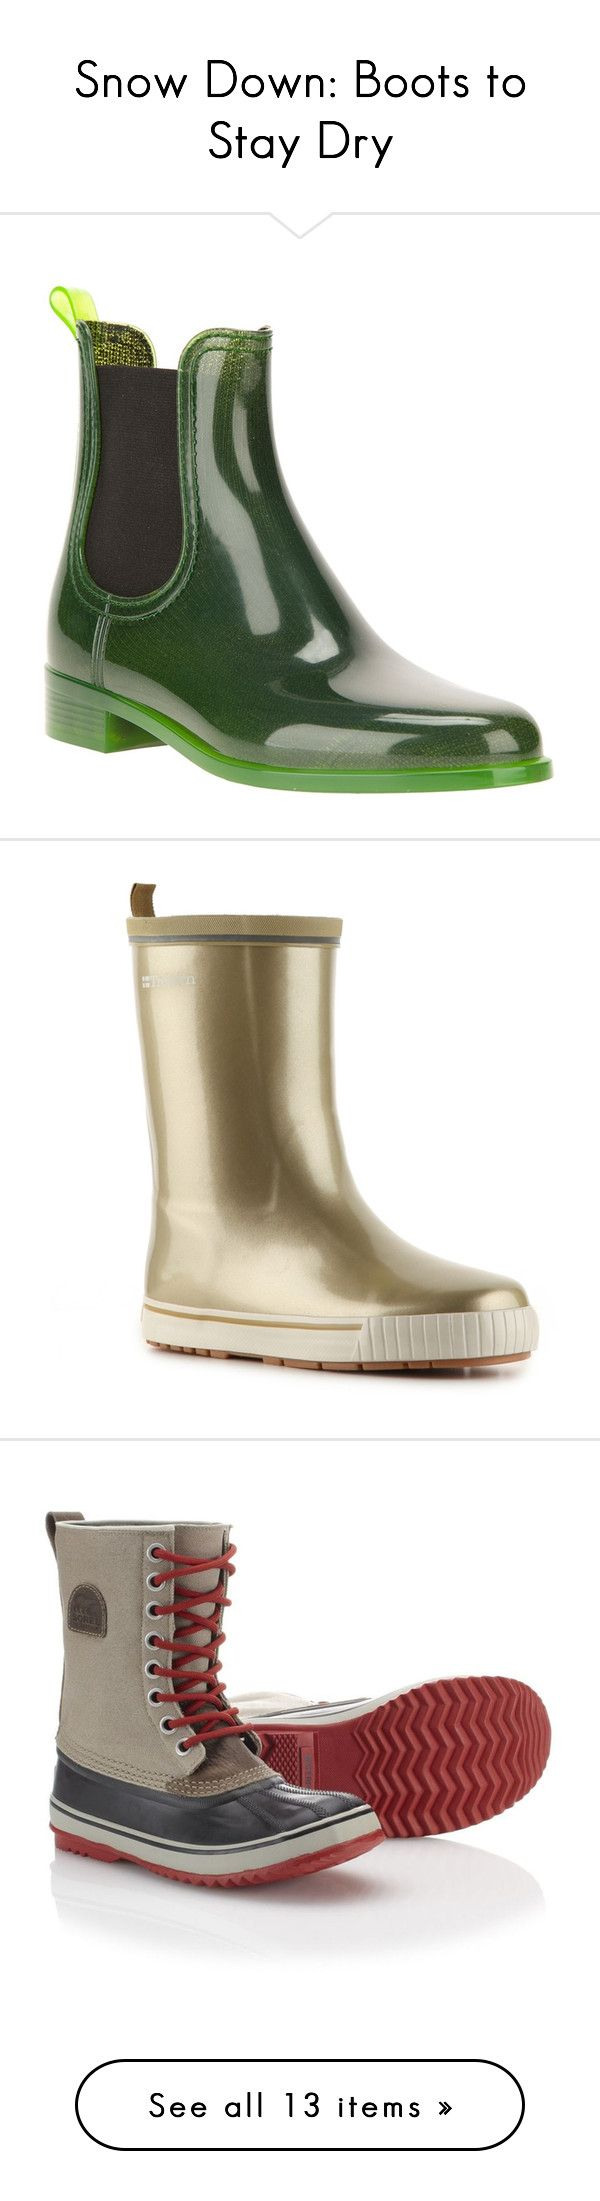 """Snow Down: Boots to Stay Dry"" by polyvore-editorial ❤ liked on Polyvore featuring snowboots, Banana Republic, SOREL, shoes, boots, green, jeffrey campbell, rain boot, low heel shoes and green wellington boots"